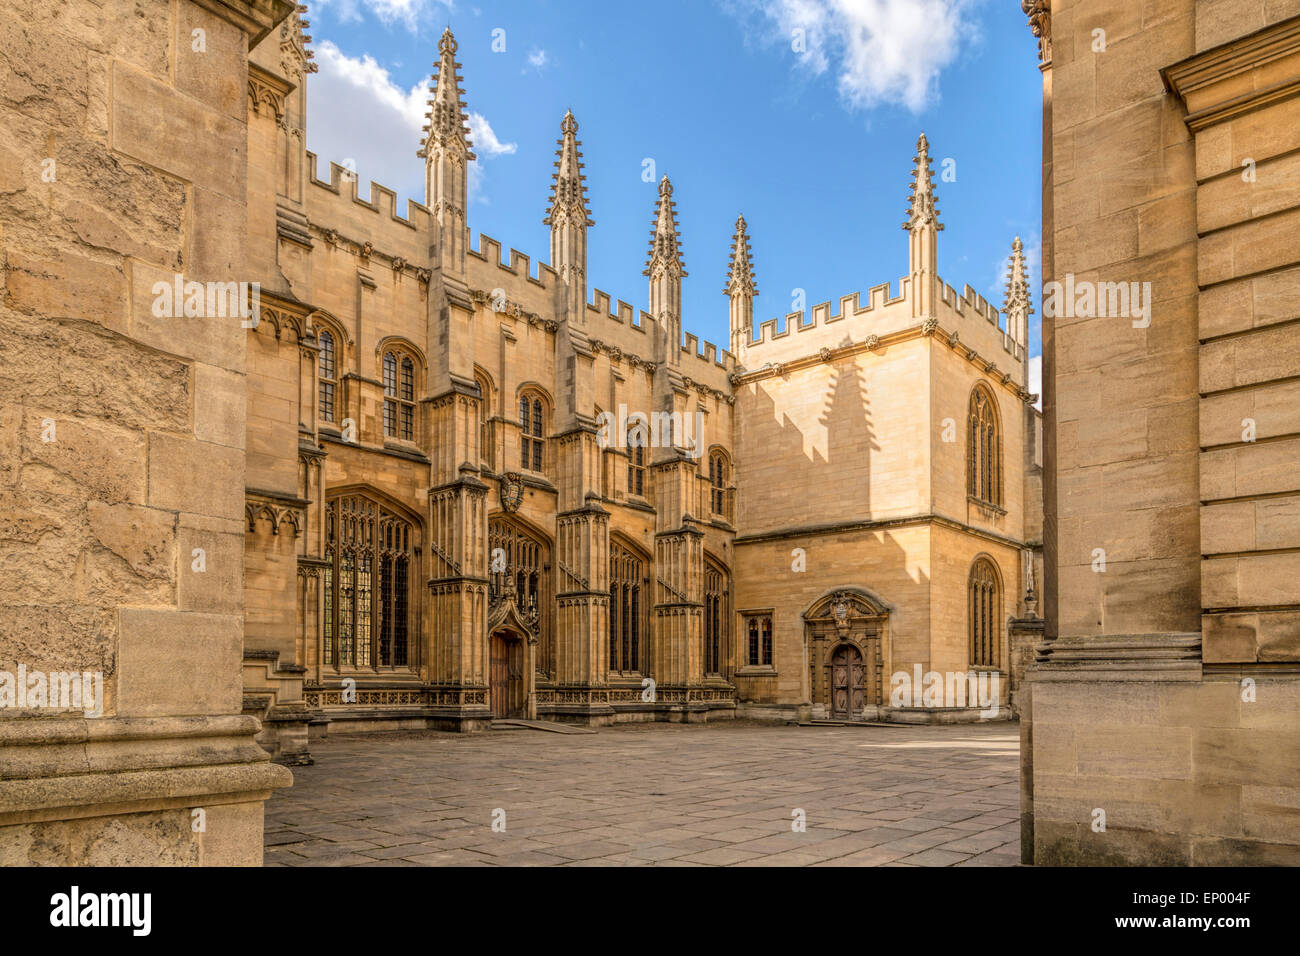 View into the courtyard of the Bodleian Library, one of the oldest libraries in Europe, Oxford, England, Oxfordshire, - Stock Image